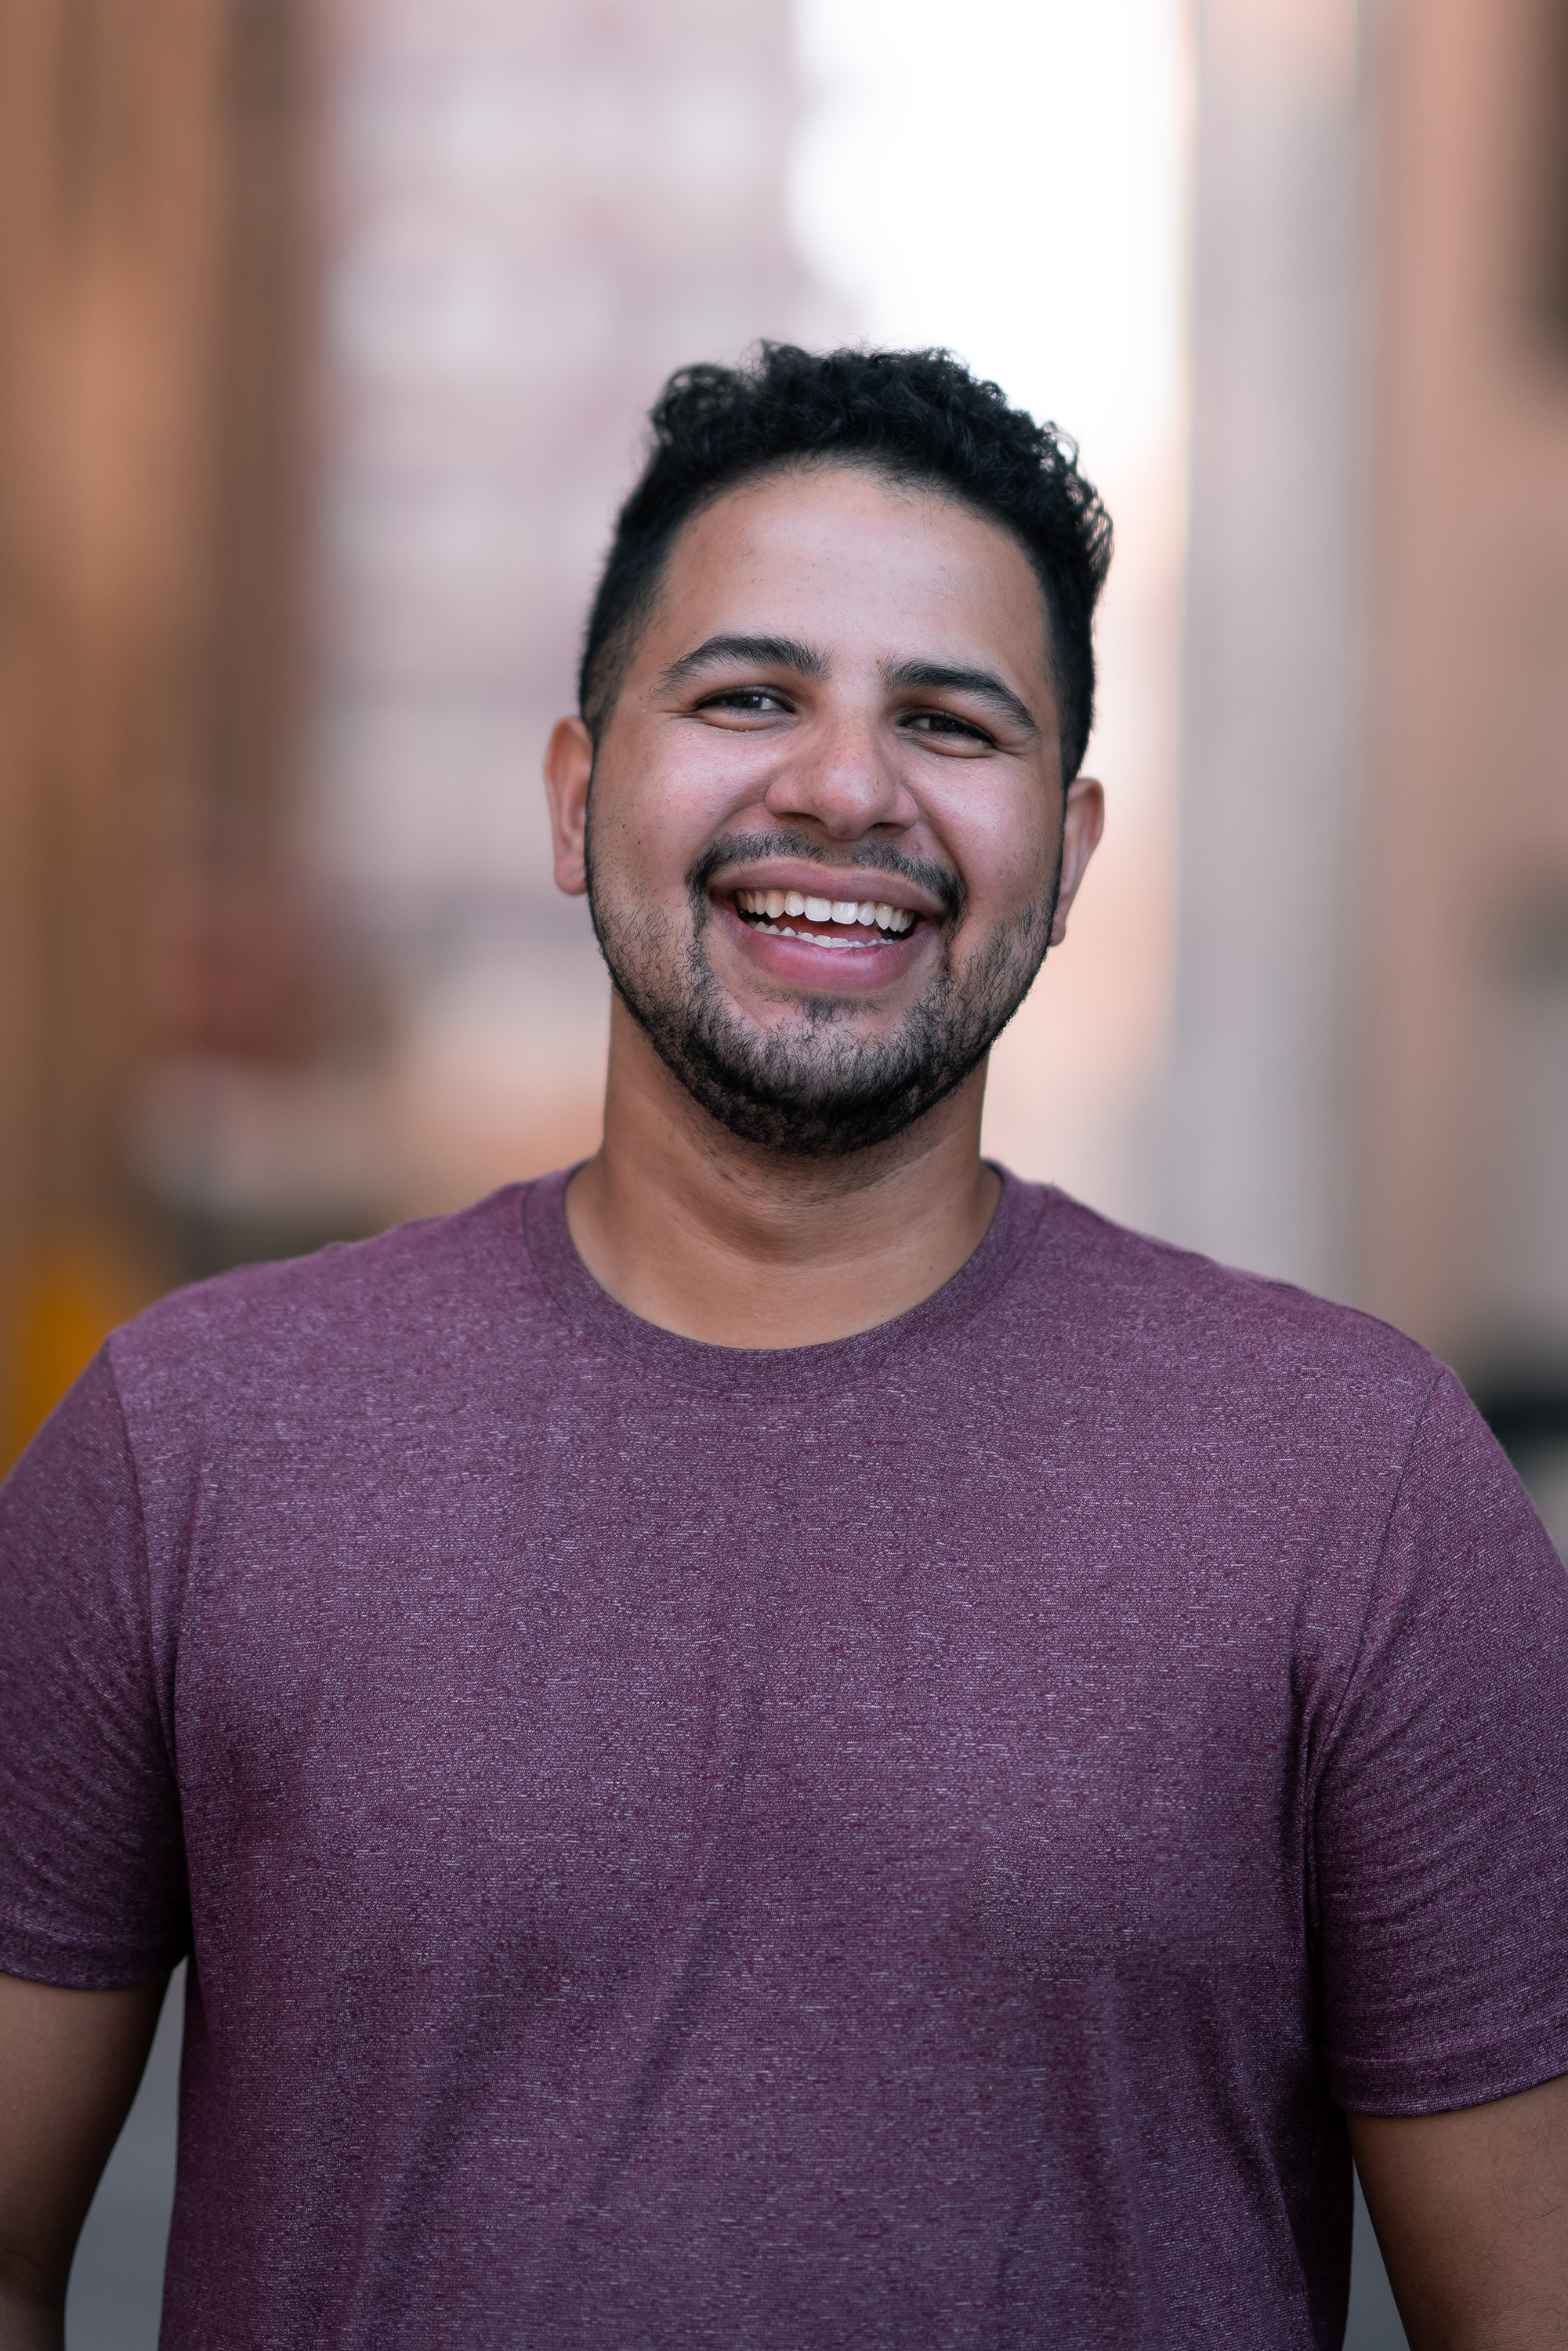 Israel Lugo III    Chief Operating Officer   Israel is a keynote speaker & handles behind the scenes and operations for Urban Misfit Ventures. He has his hands in everything and he prefers it that way. Izzy is also a huge foodie and has a background in the sports industry.